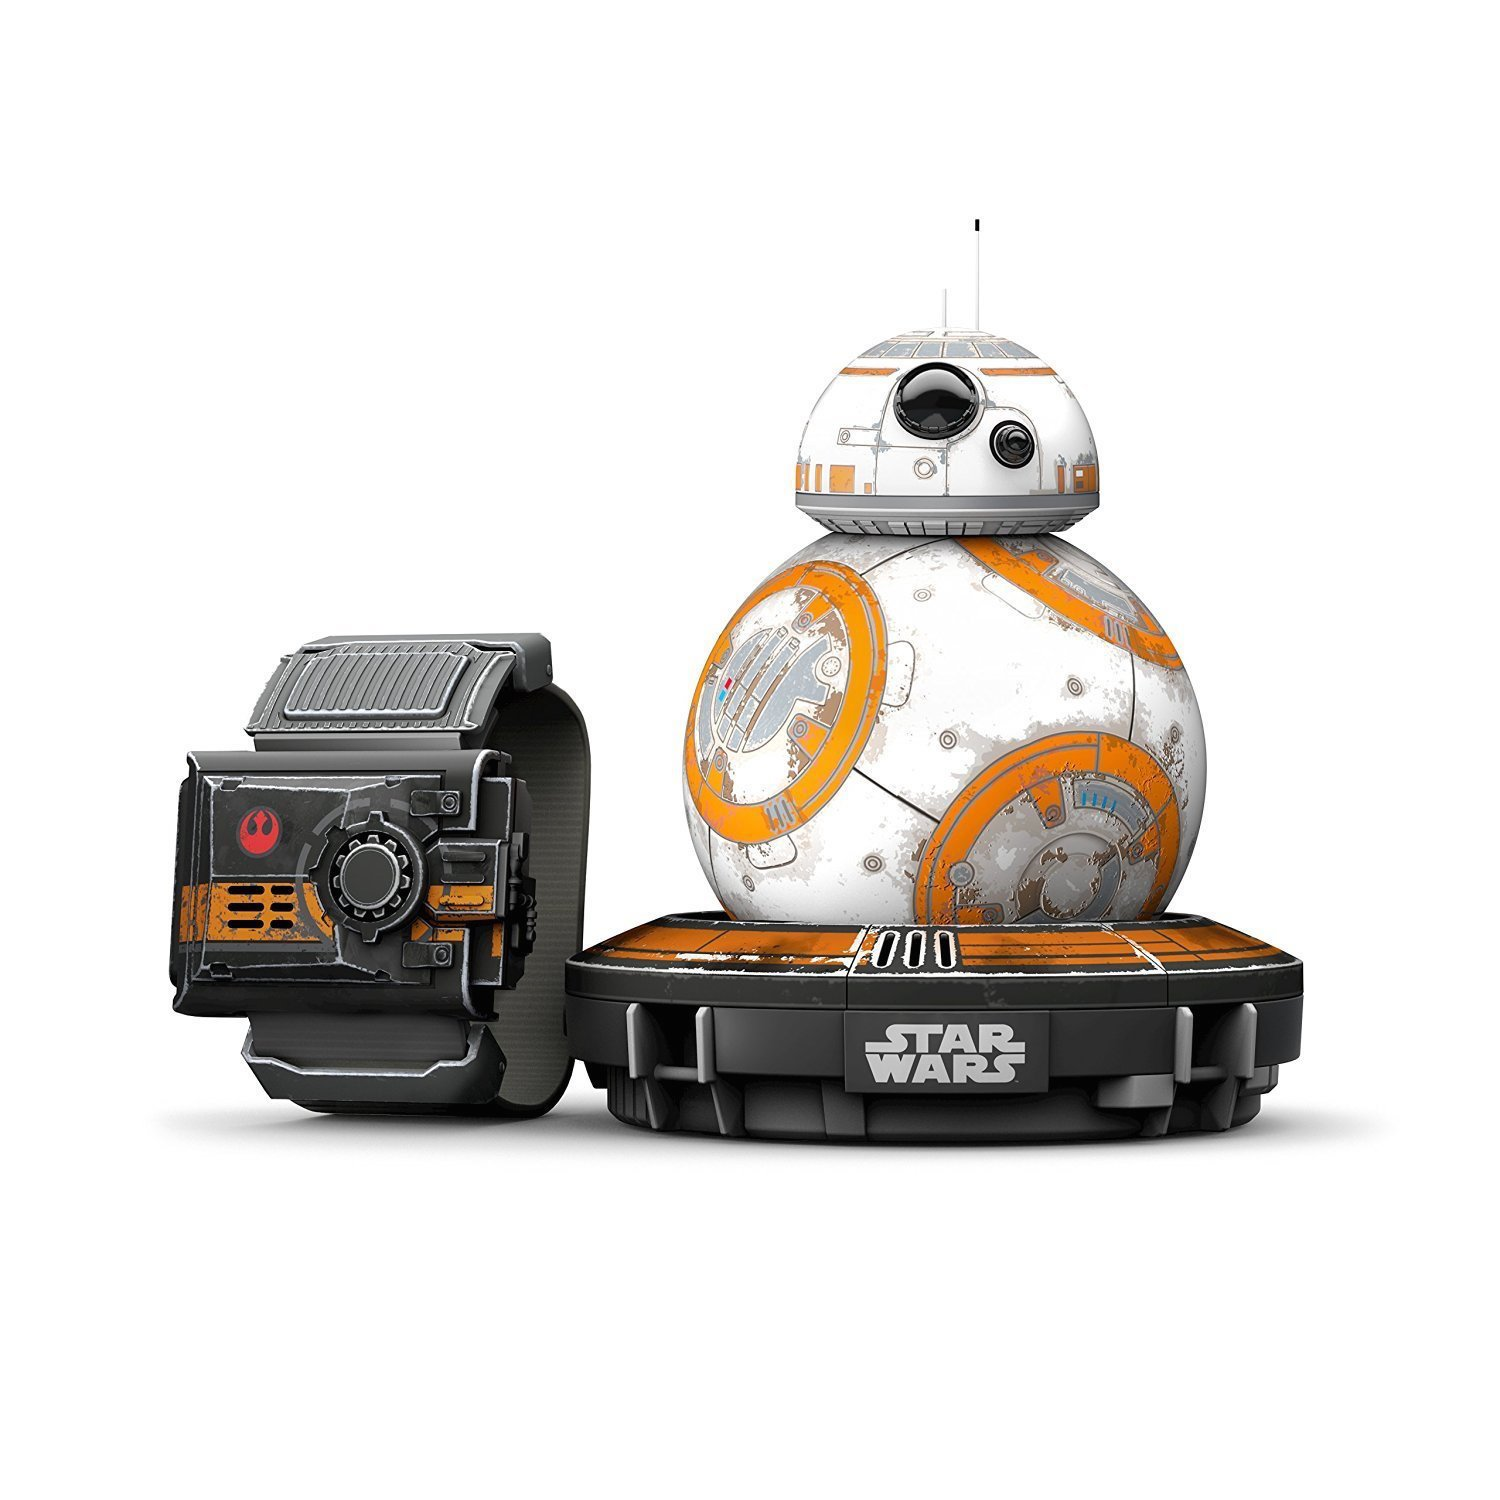 Special Edition Battle-Worn BB-8 by Sphero with Force Band by Sphero (Image #1)